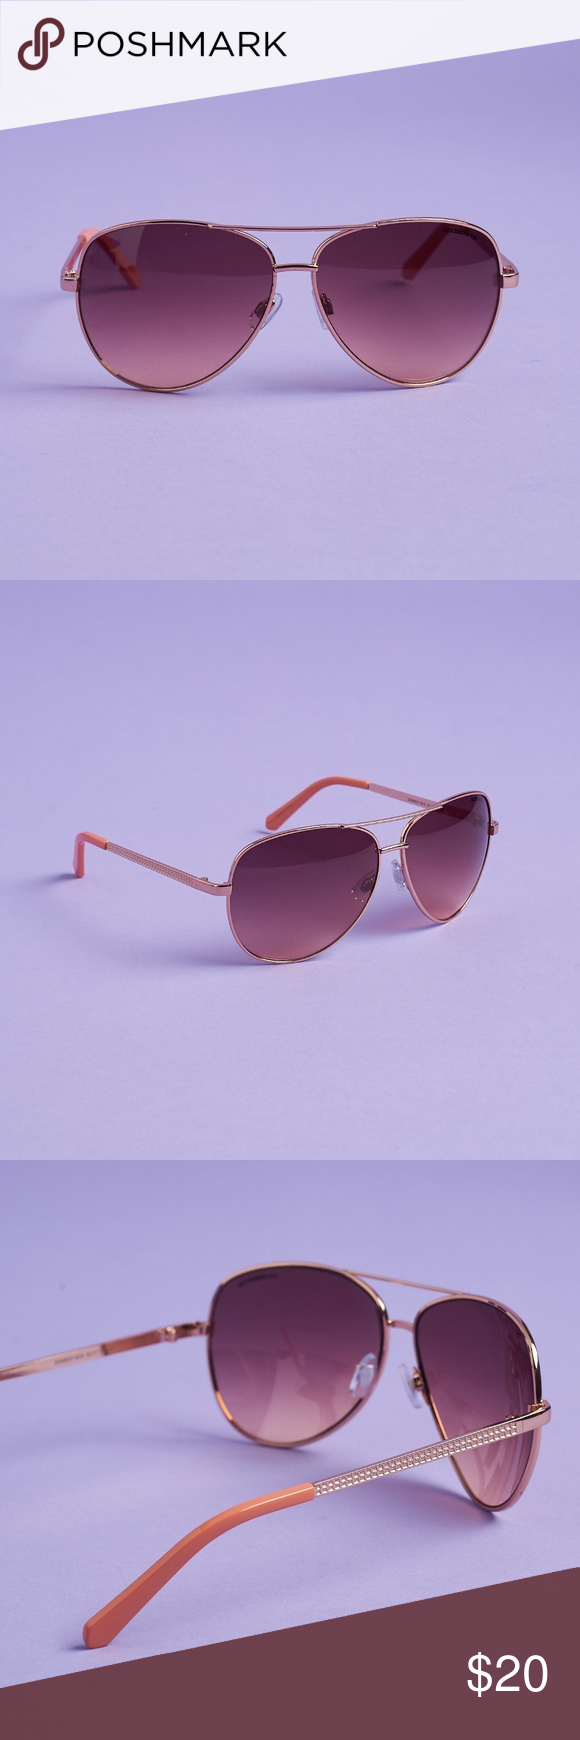 4197cb7edc The style is Sloane and it s a perfect shade of rose gold. Liz Claiborne  Accessories Sunglasses